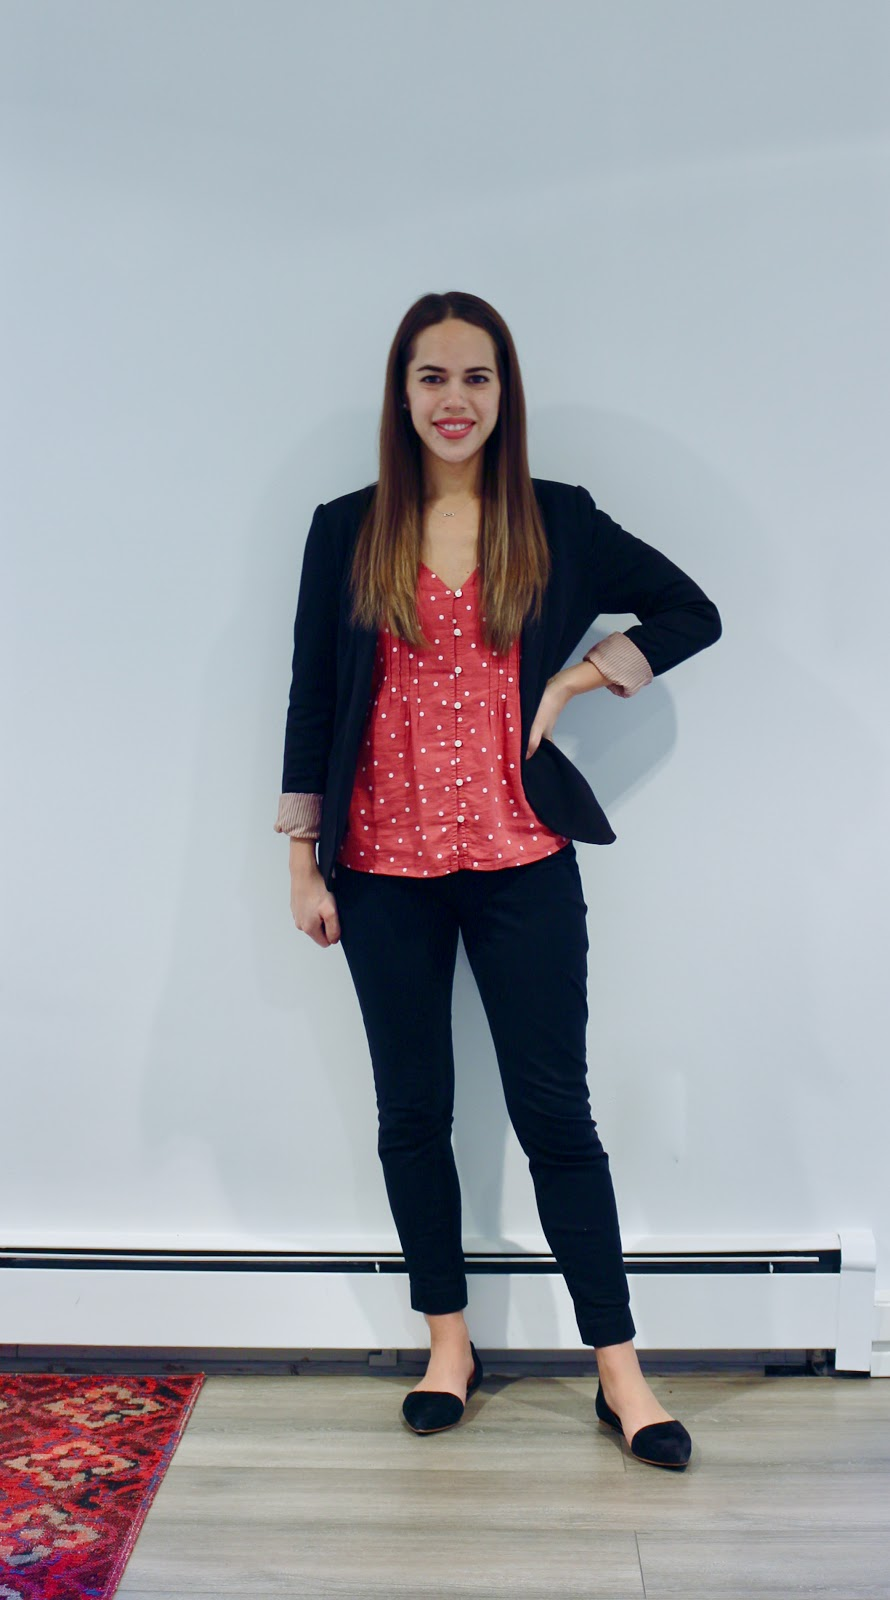 Jules in Flats - Pintucked V-Neck Button Front Top with Blazer (Business Casual Fall Workwear on a Budget)